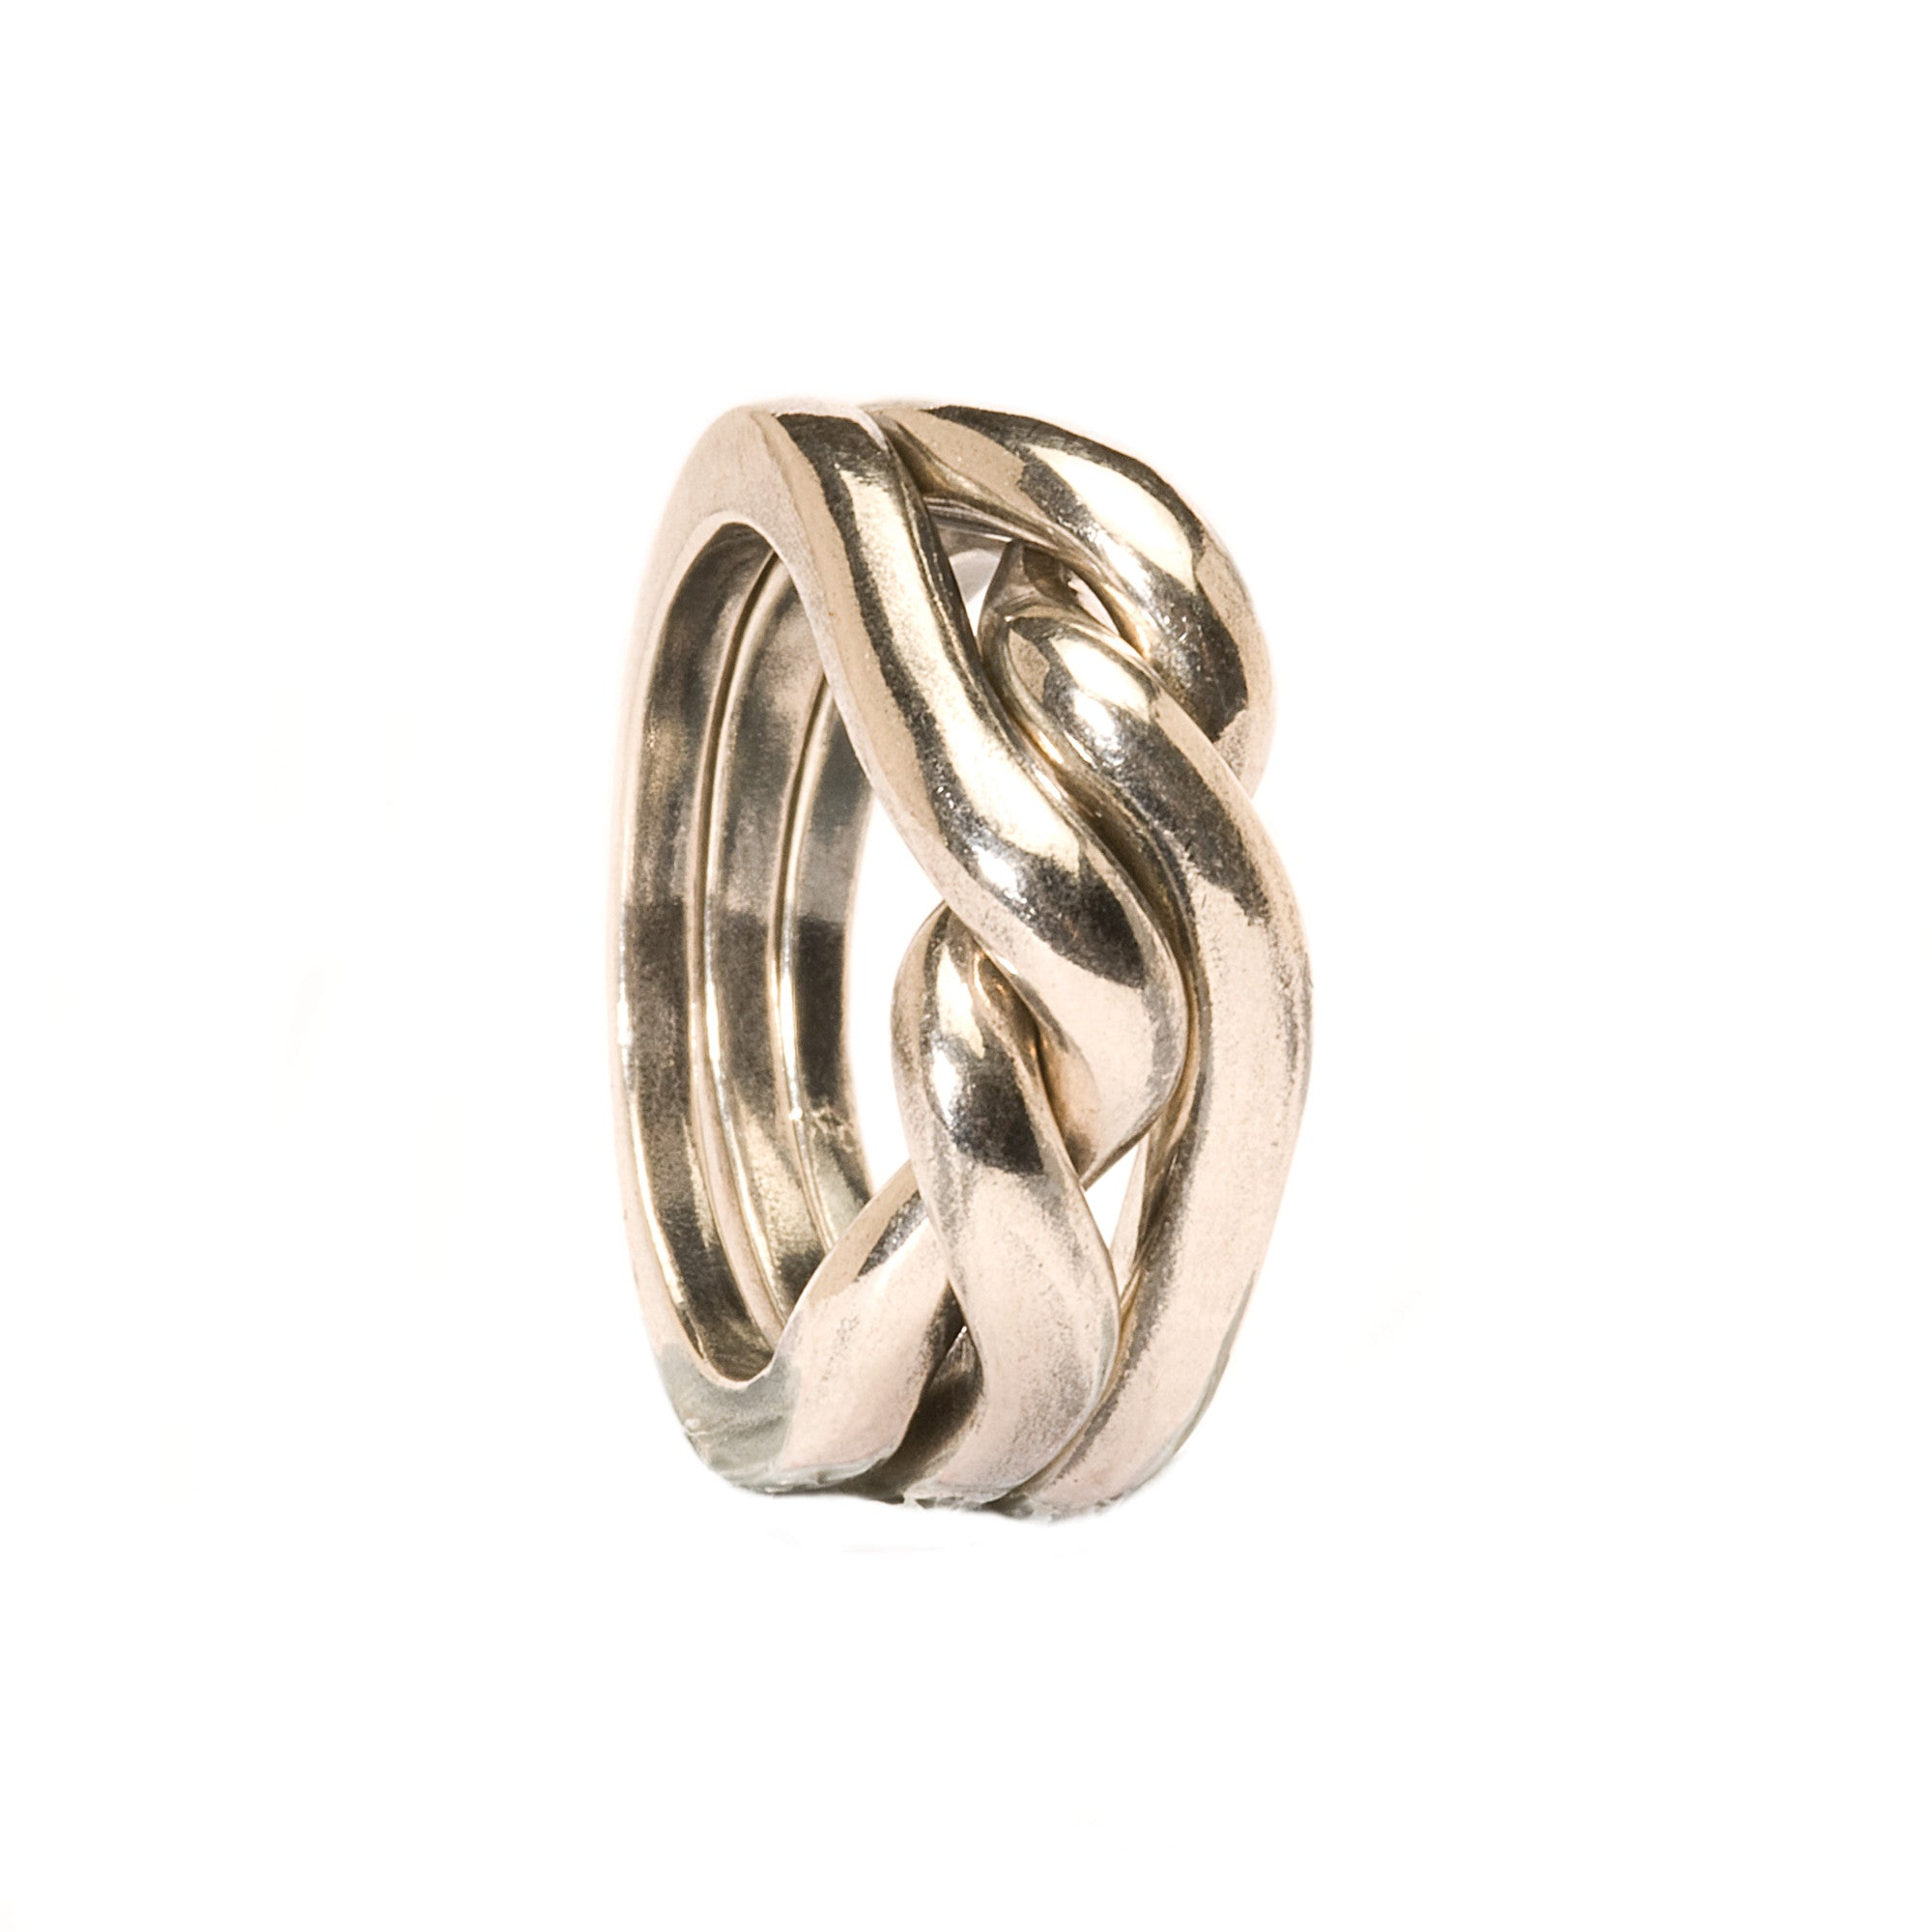 Trollbeads Ring Strength Courage and Wisdom